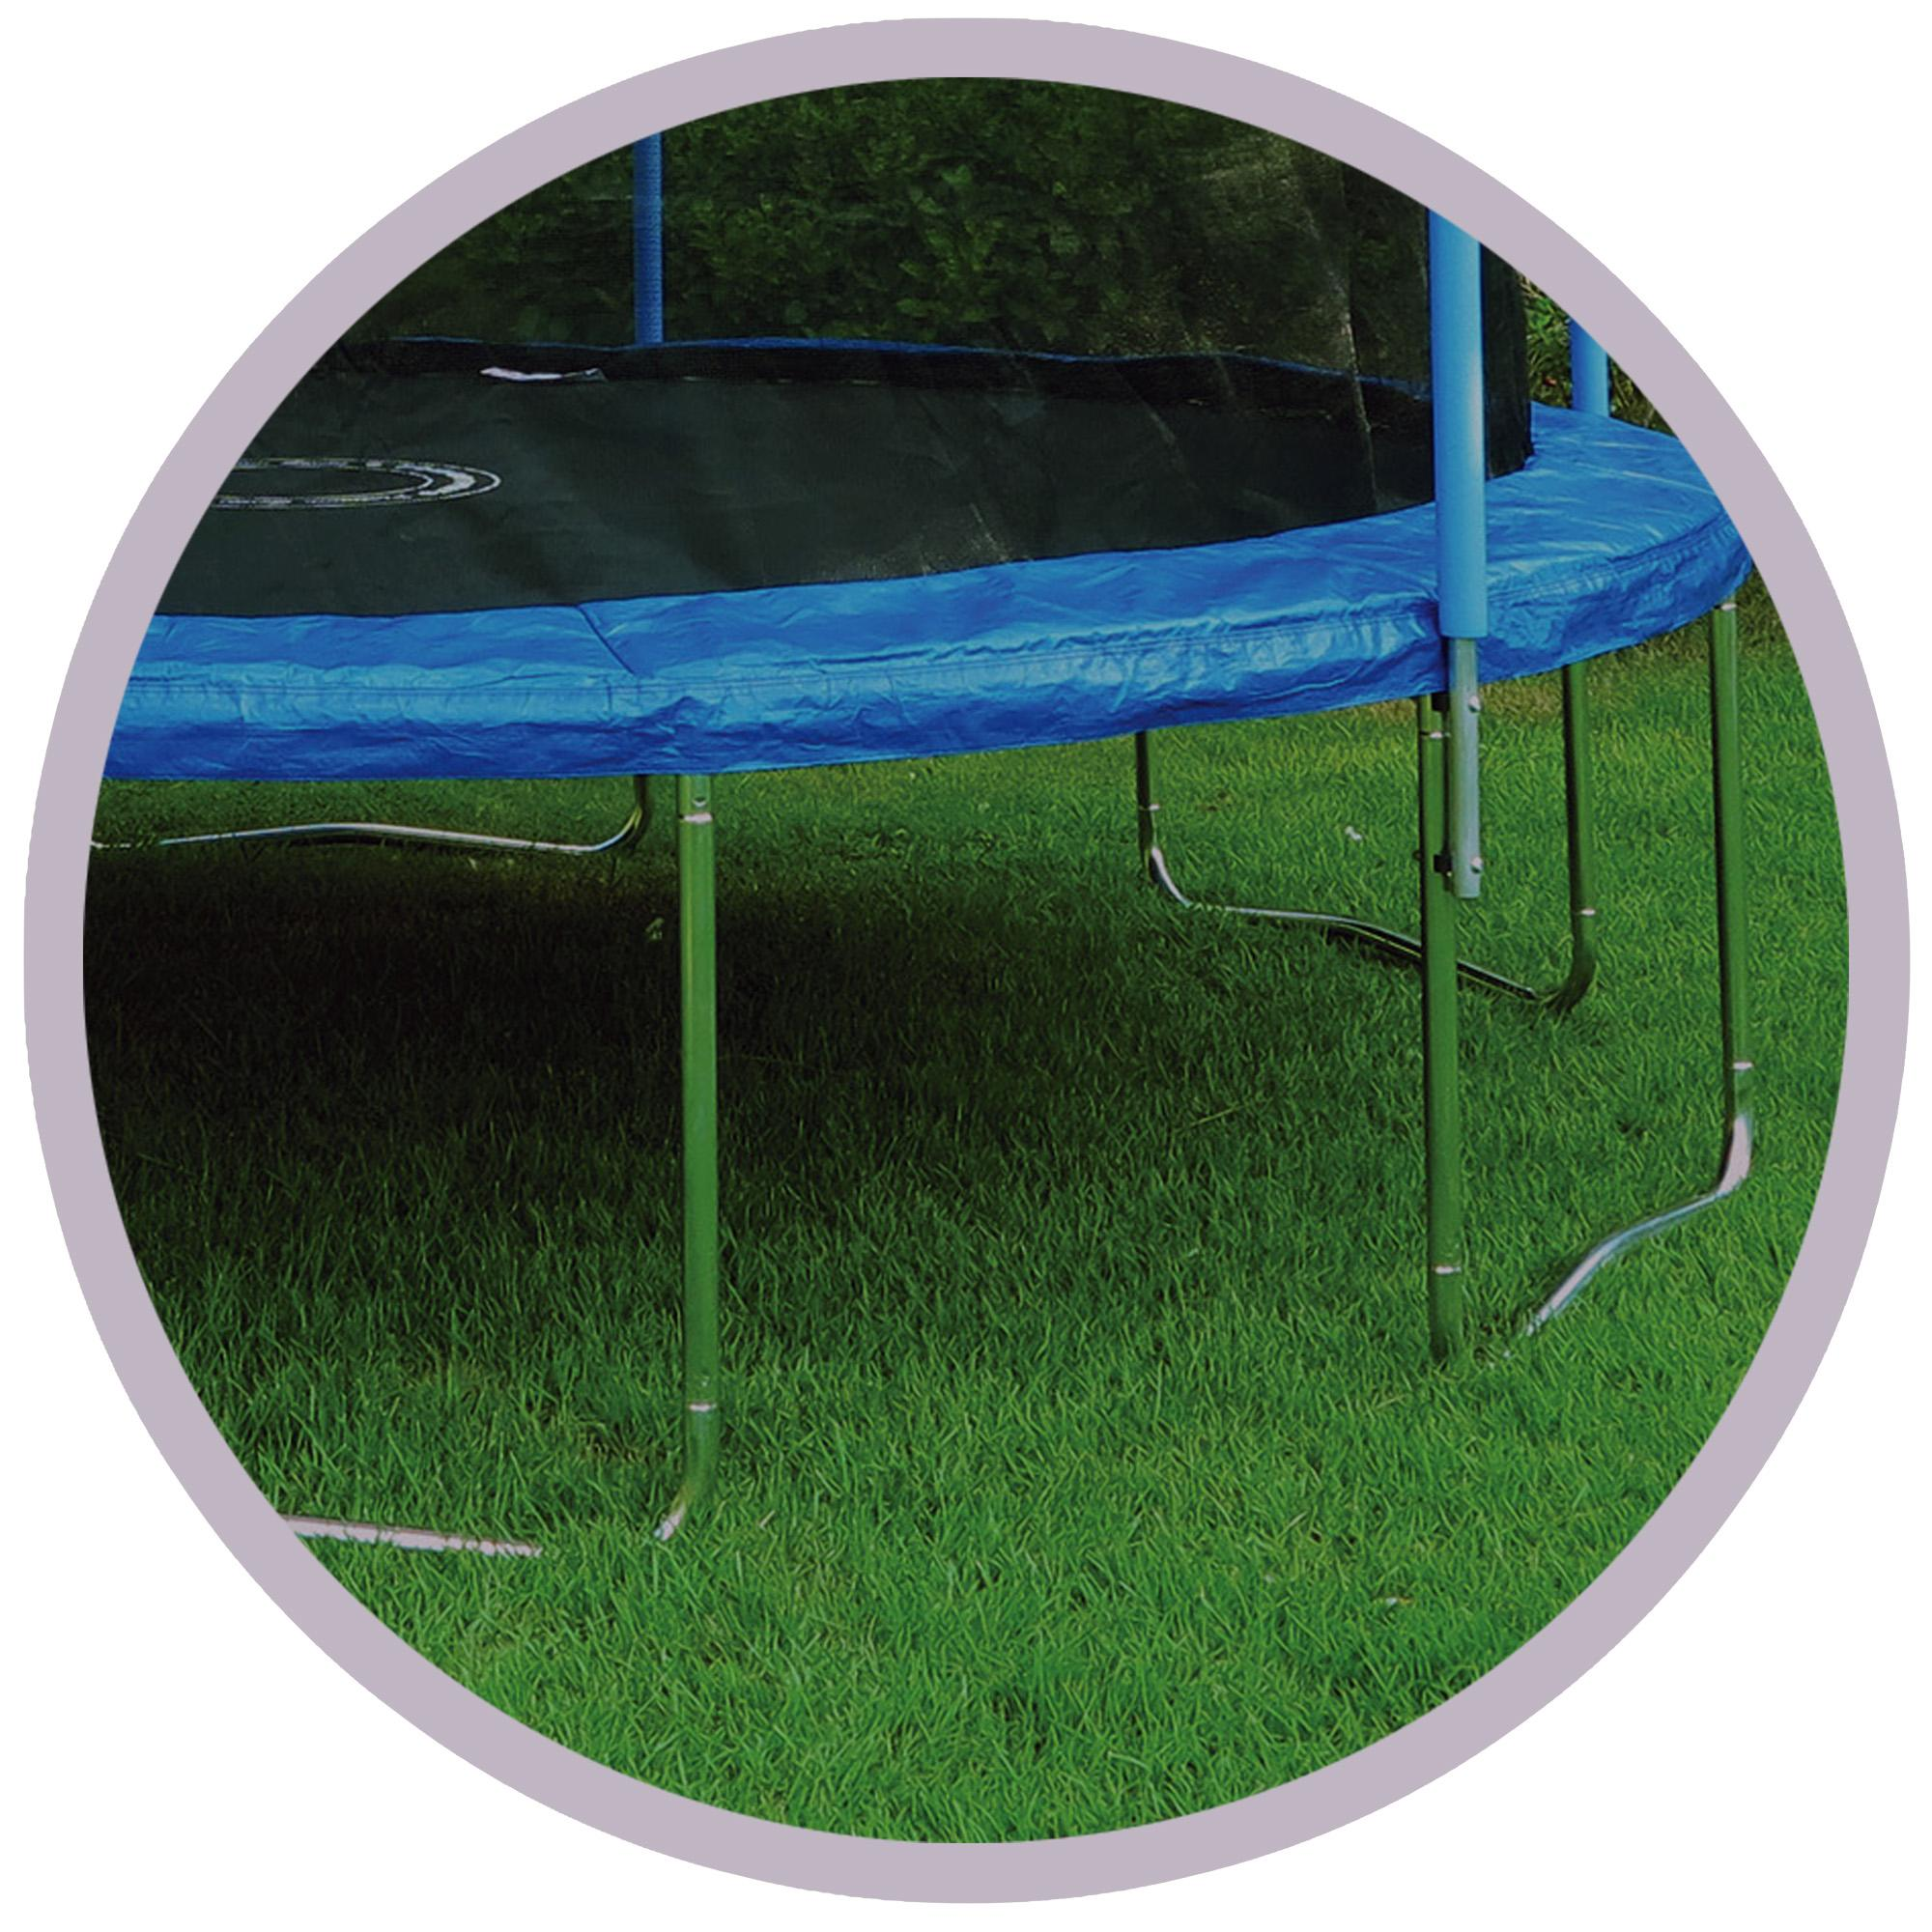 Trampoline Springs B Q: Trainor Sports 12-feet Round Trampoline & Enclosure Combo